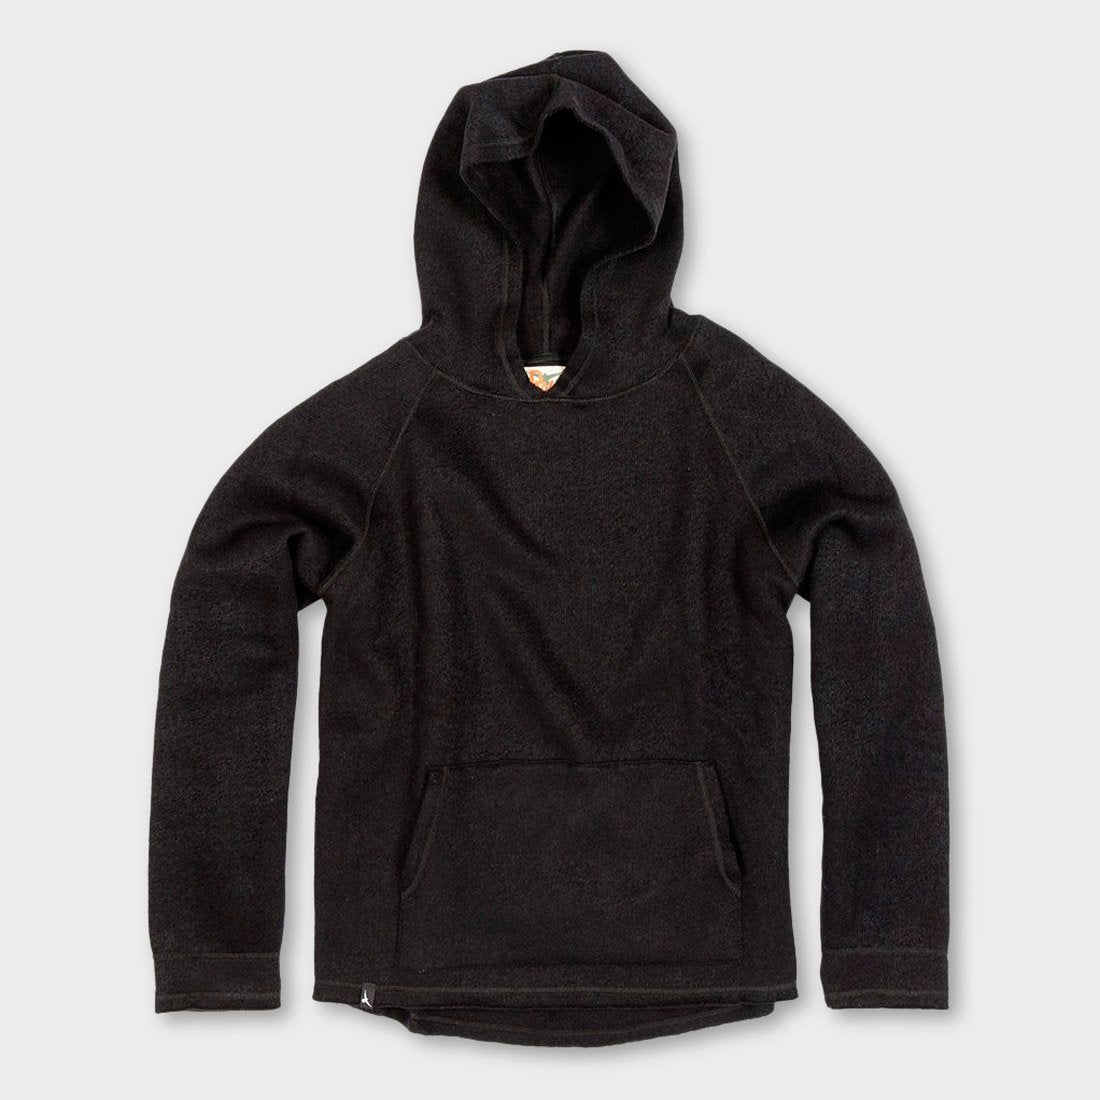 Duckworth Powder Hoody Black